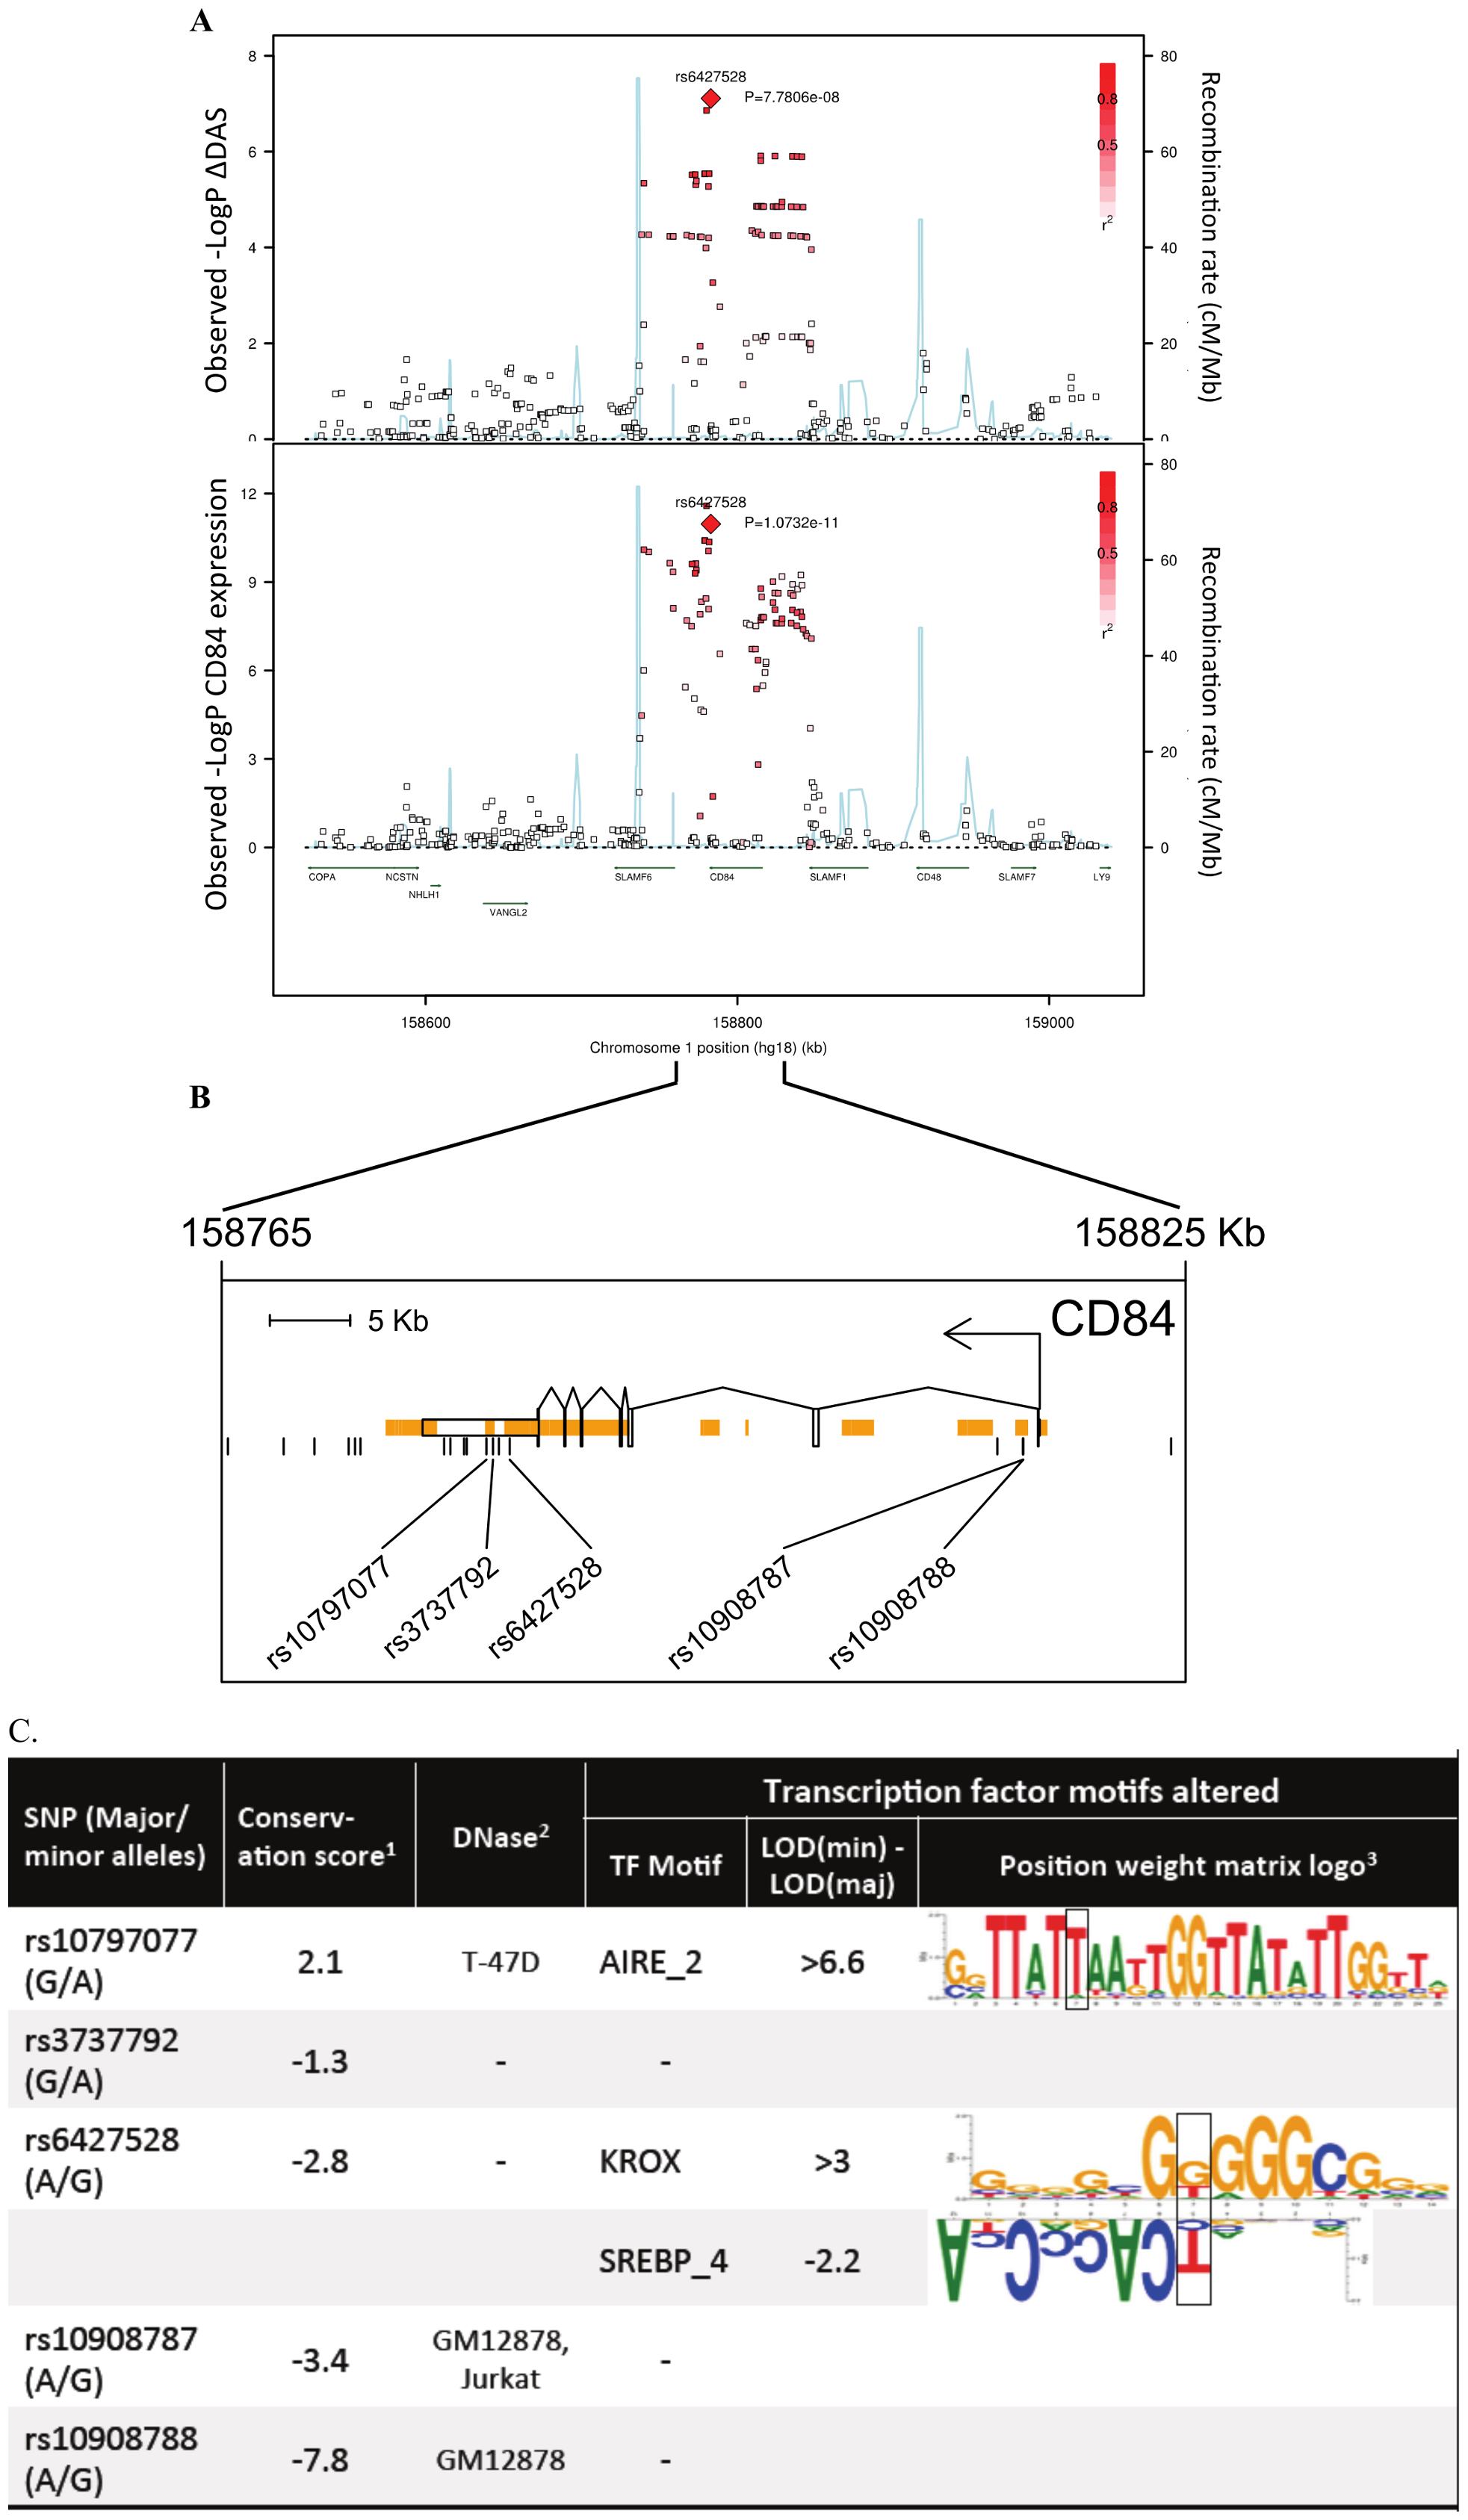 Association results and SNP annotations in the <i>1q23 CD84</i> locus.